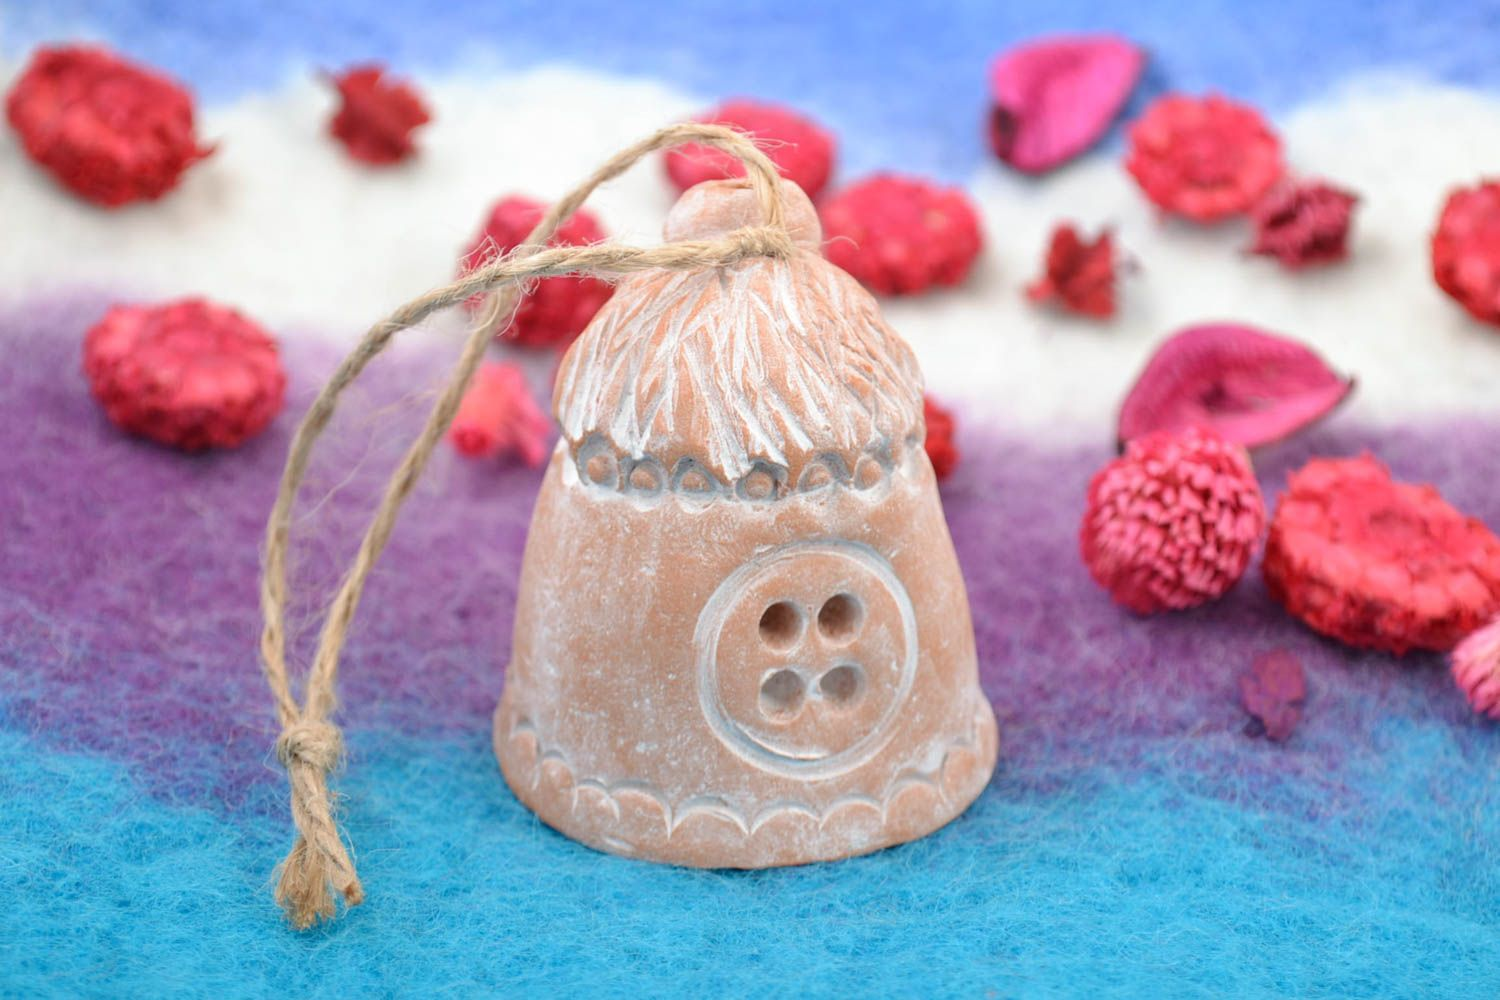 Handmade small decorative wall hanging ceramic bell in the shape of house photo 1